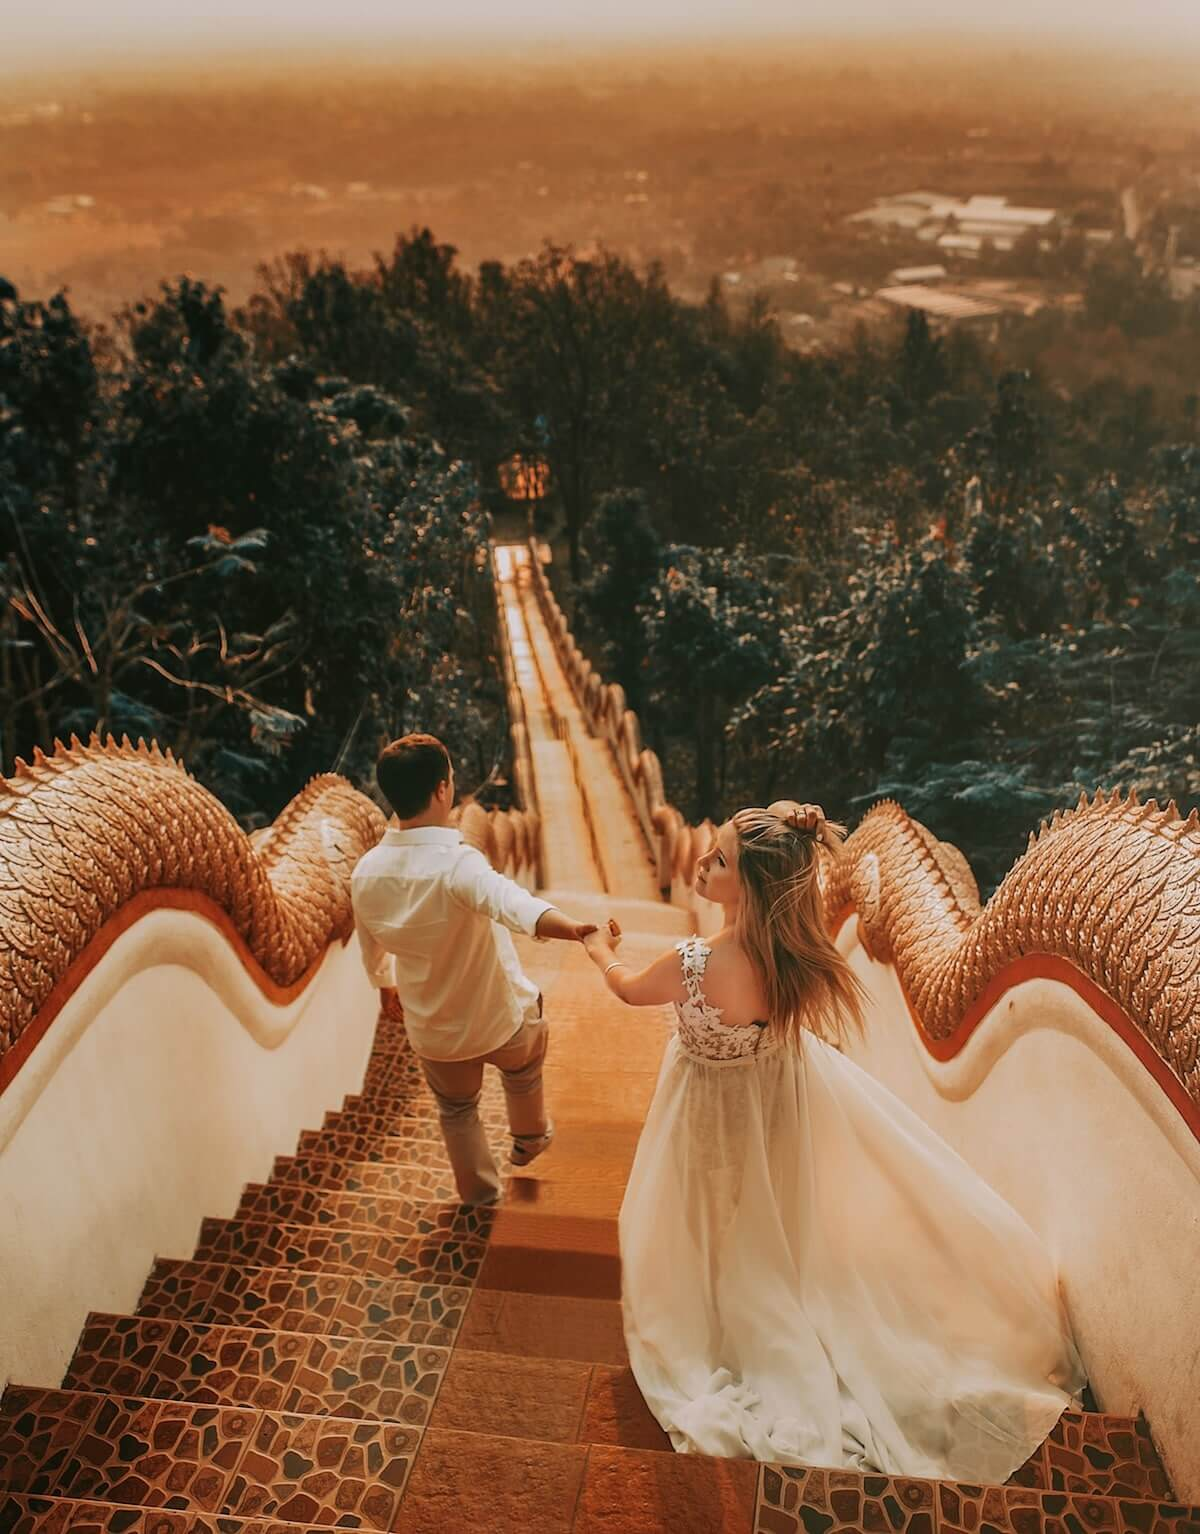 Winners of International Wedding Photography Contest 21 (1)